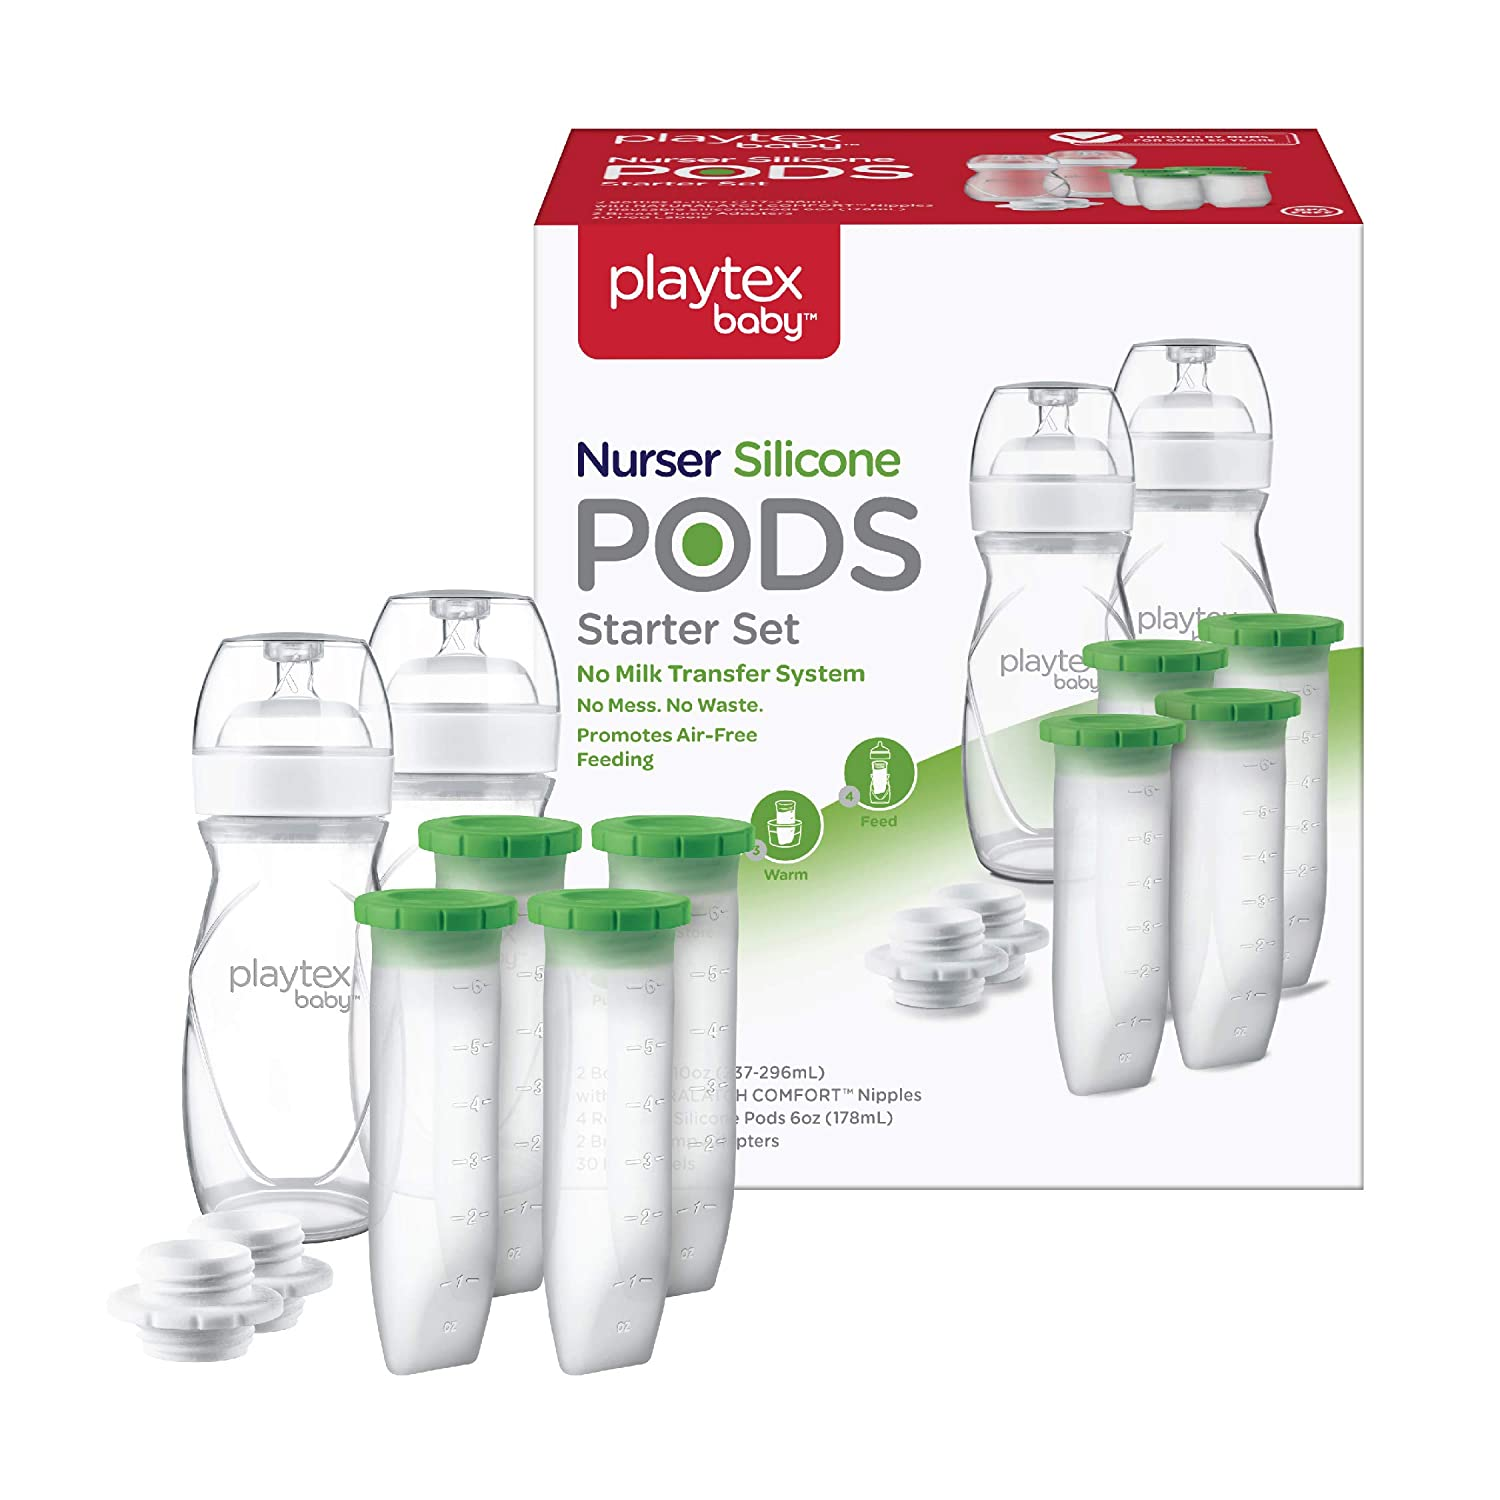 Playtex Baby Nurser Reusable Silicone PODS Starter Set for Breastmilk Storage & Air-Free Feeding